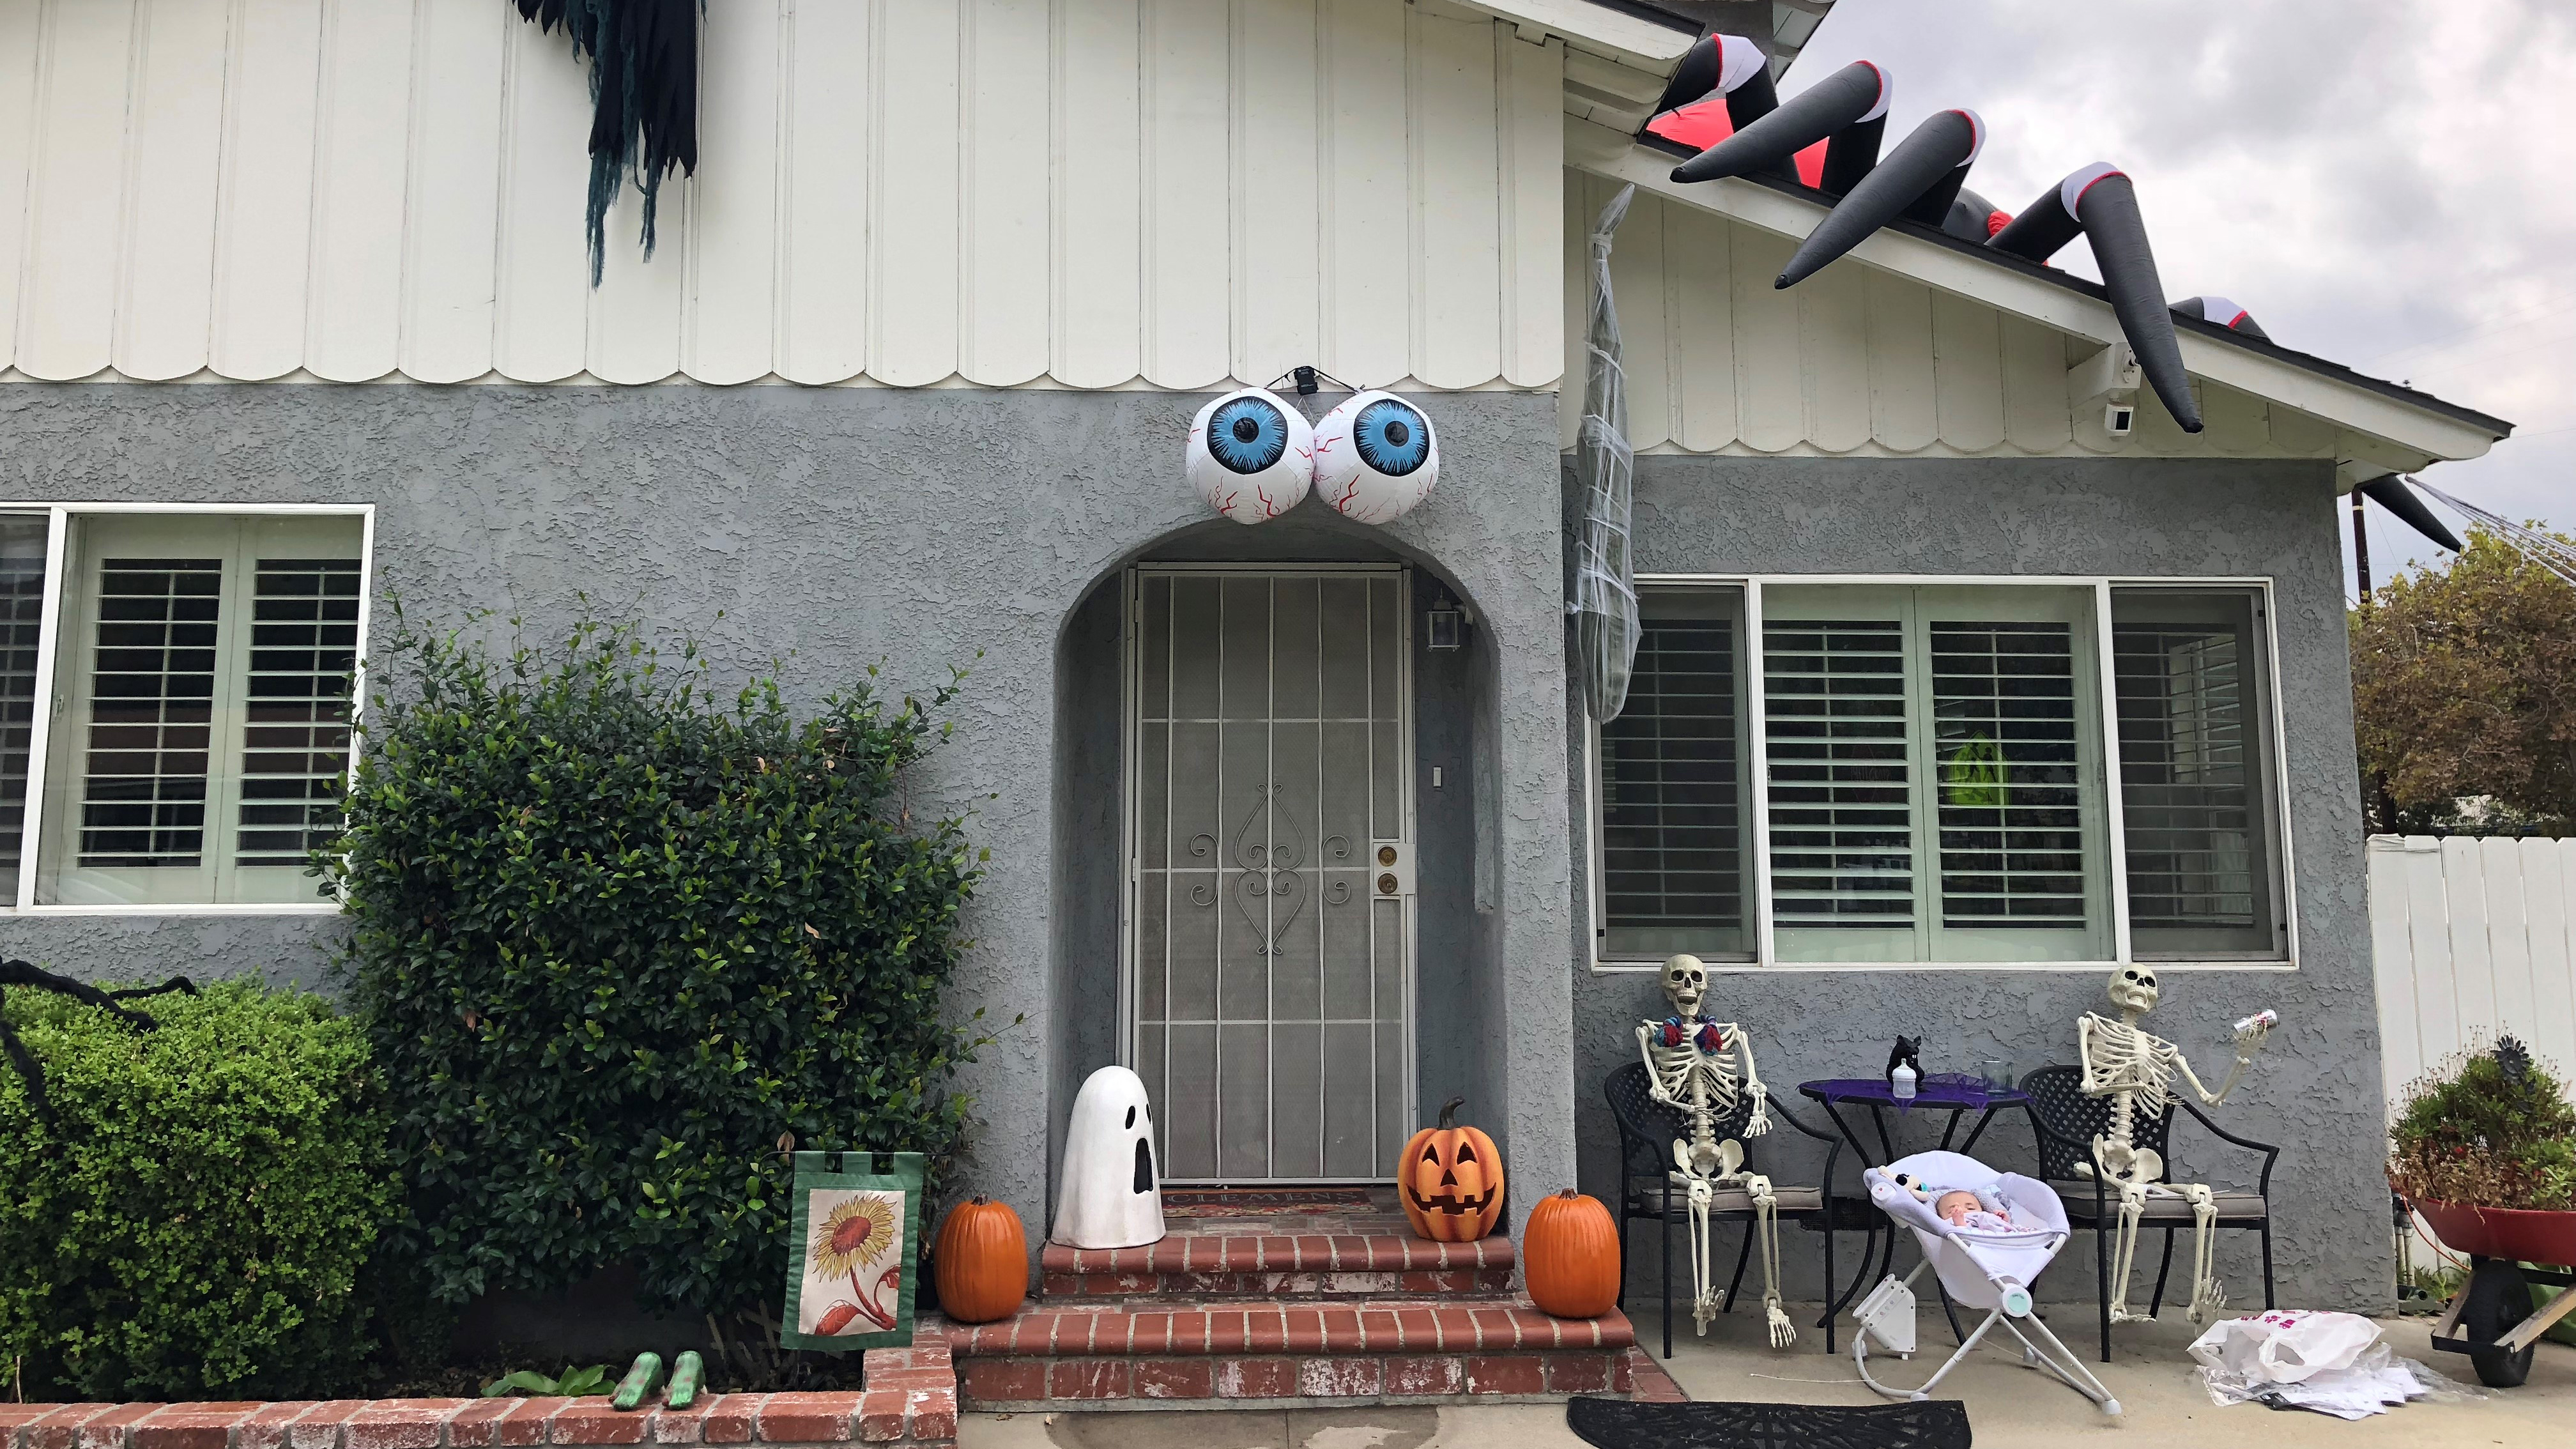 A 14-foot spider rests on top of this house in La Verne, complete with a giant spider web and baby spiders crawling up the white picket fence.